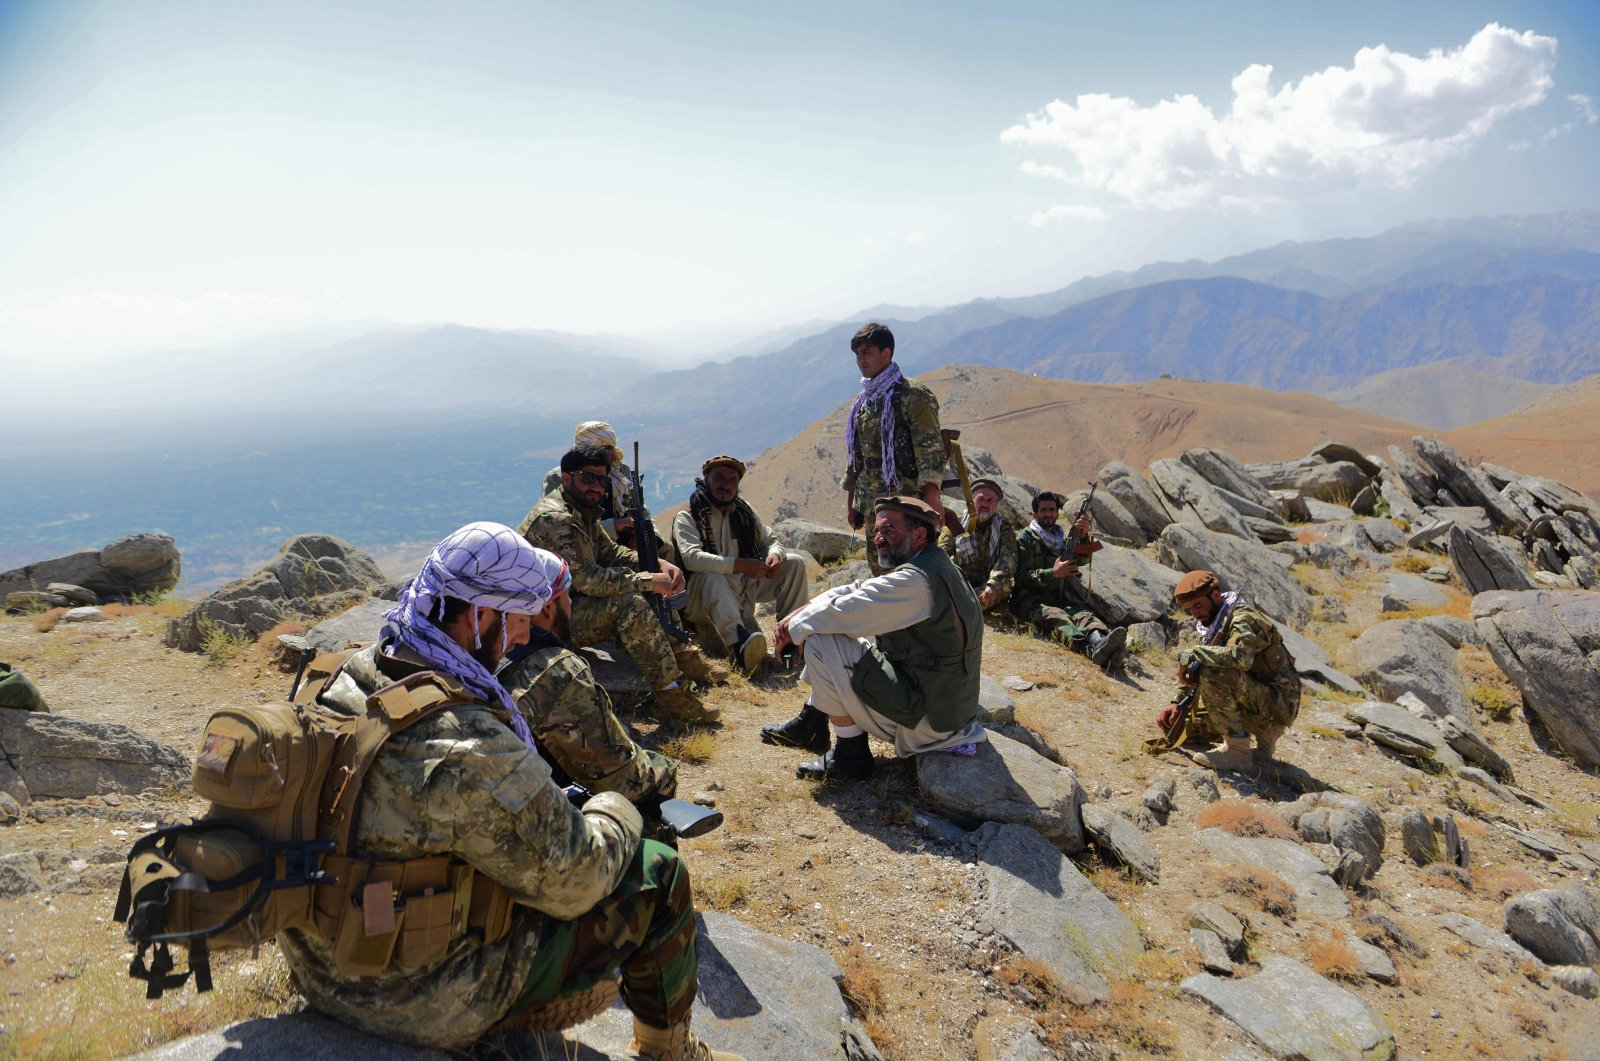 Afghan resistance movement and anti-Taliban uprising forces take rest as they patrol on a hilltop in Darband area in Anaba district, Panjshir province, Afghanistan, Sept. 1, 2021. (AFP Photo)